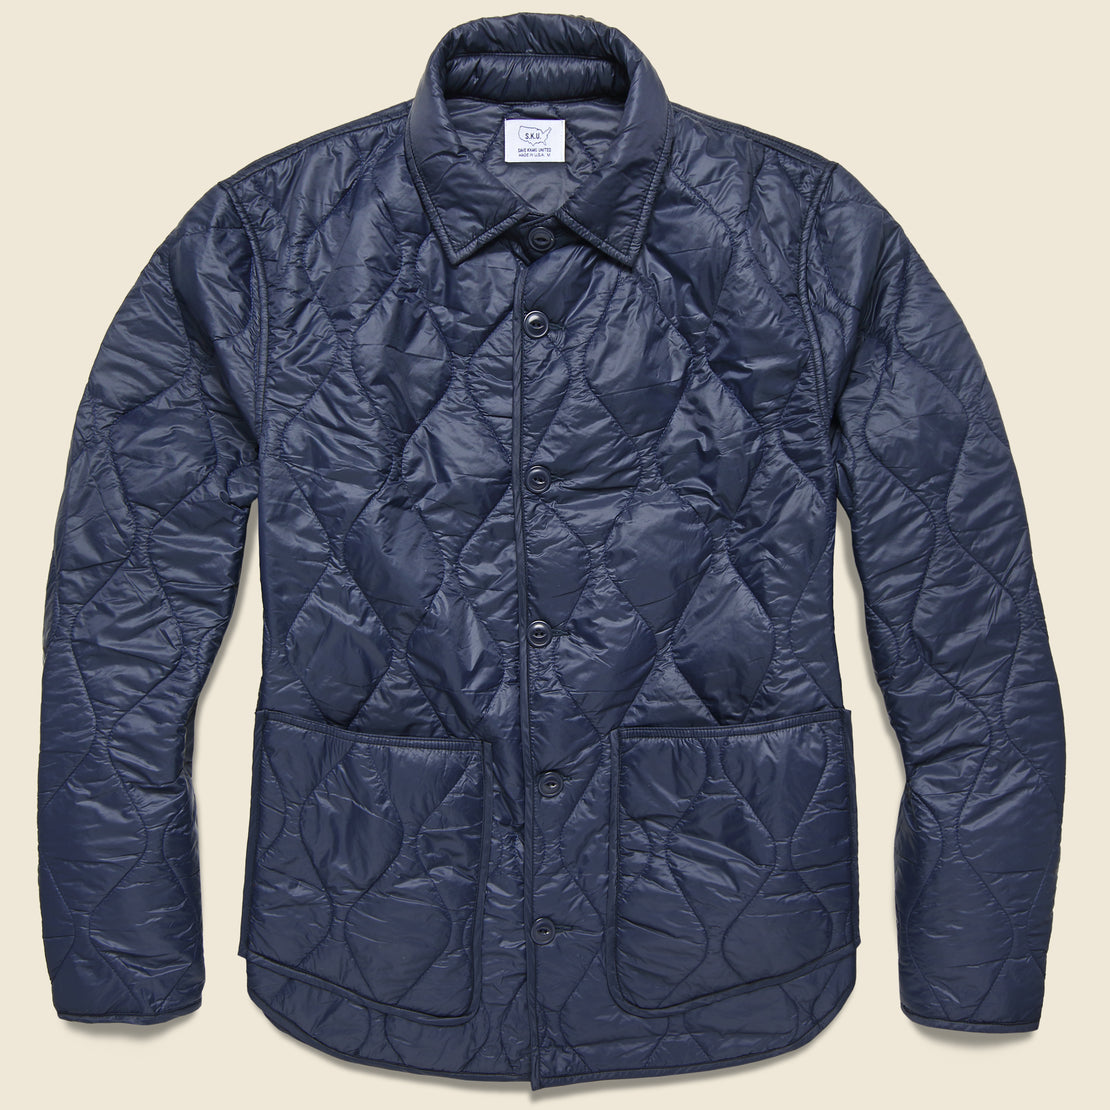 Save Khaki Quilted Nylon Shirt Jacket - Navy